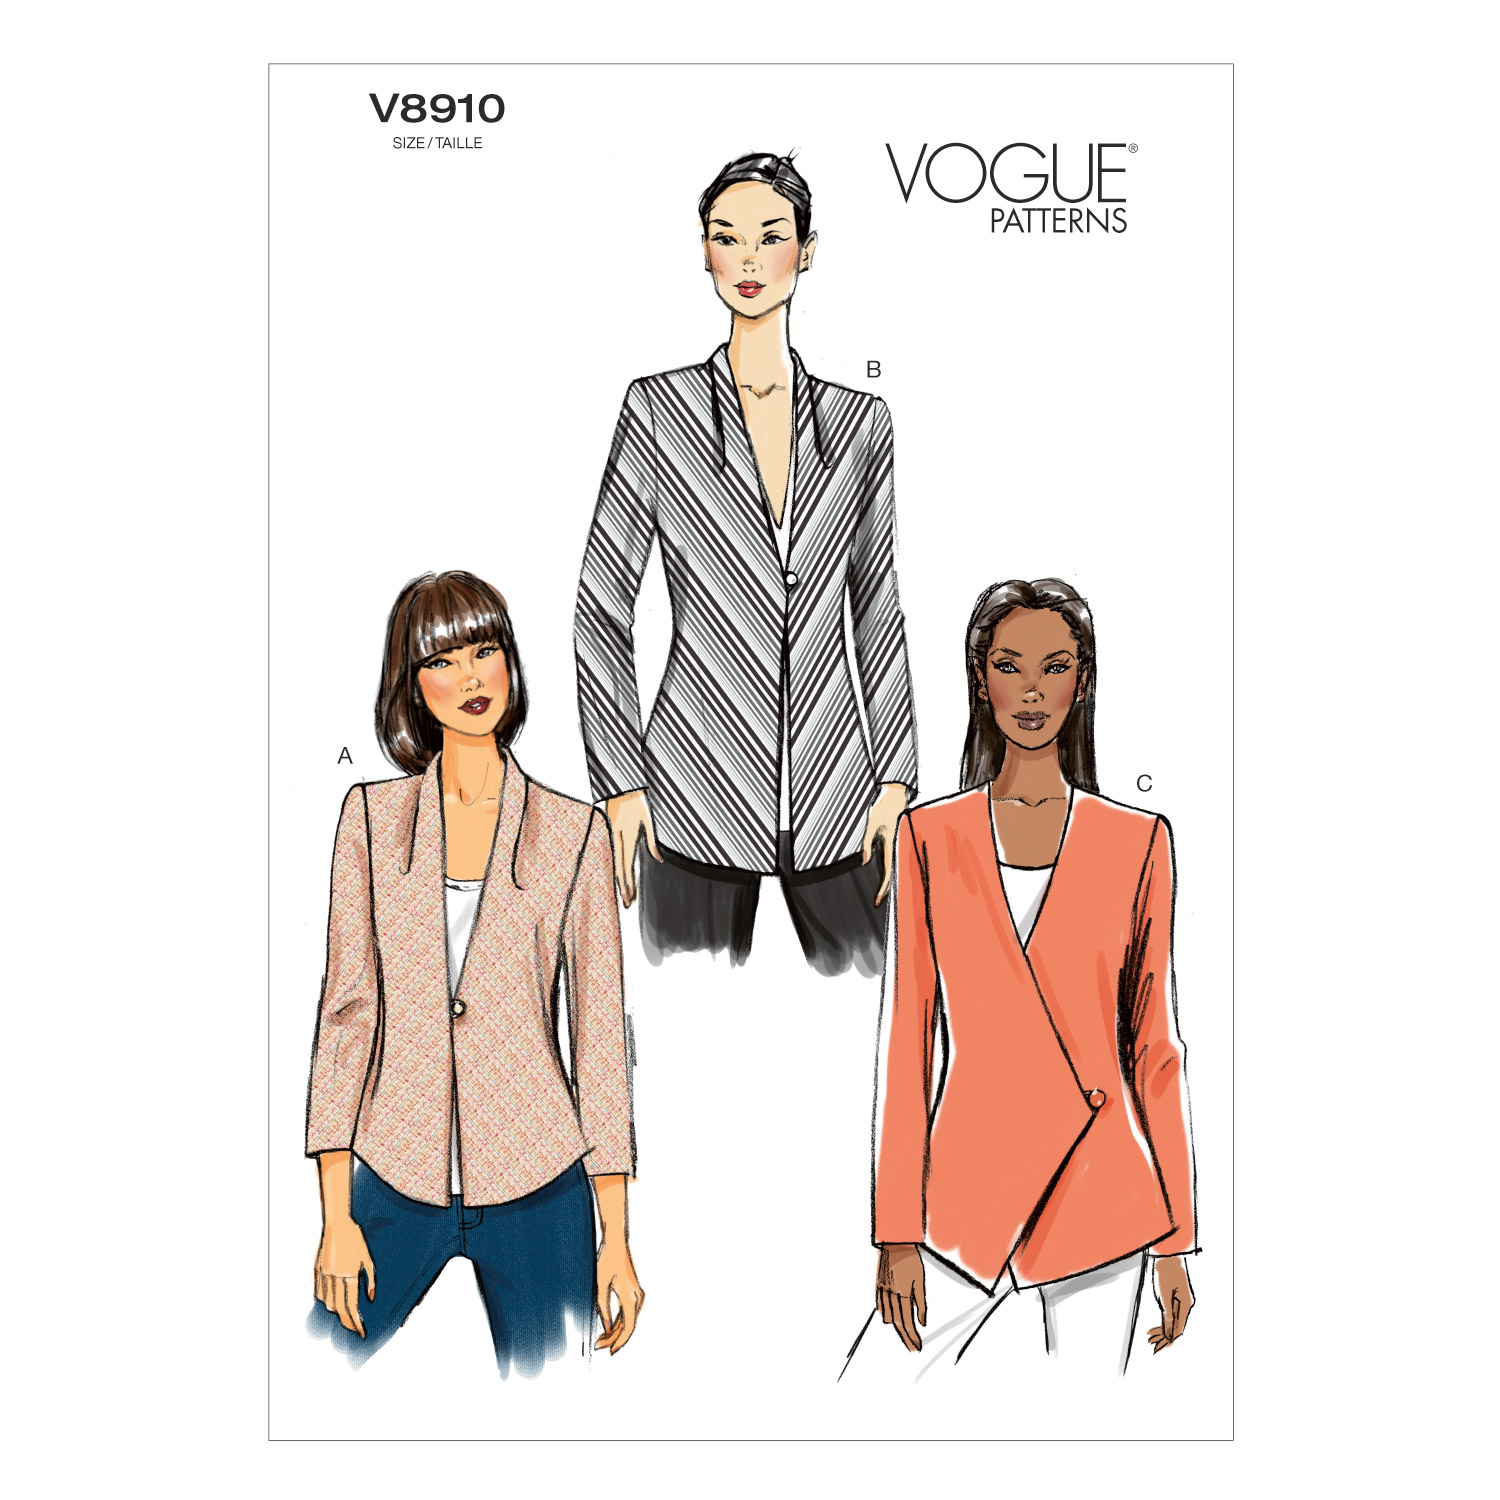 Vogue Patterns Misses Jacket-V8910